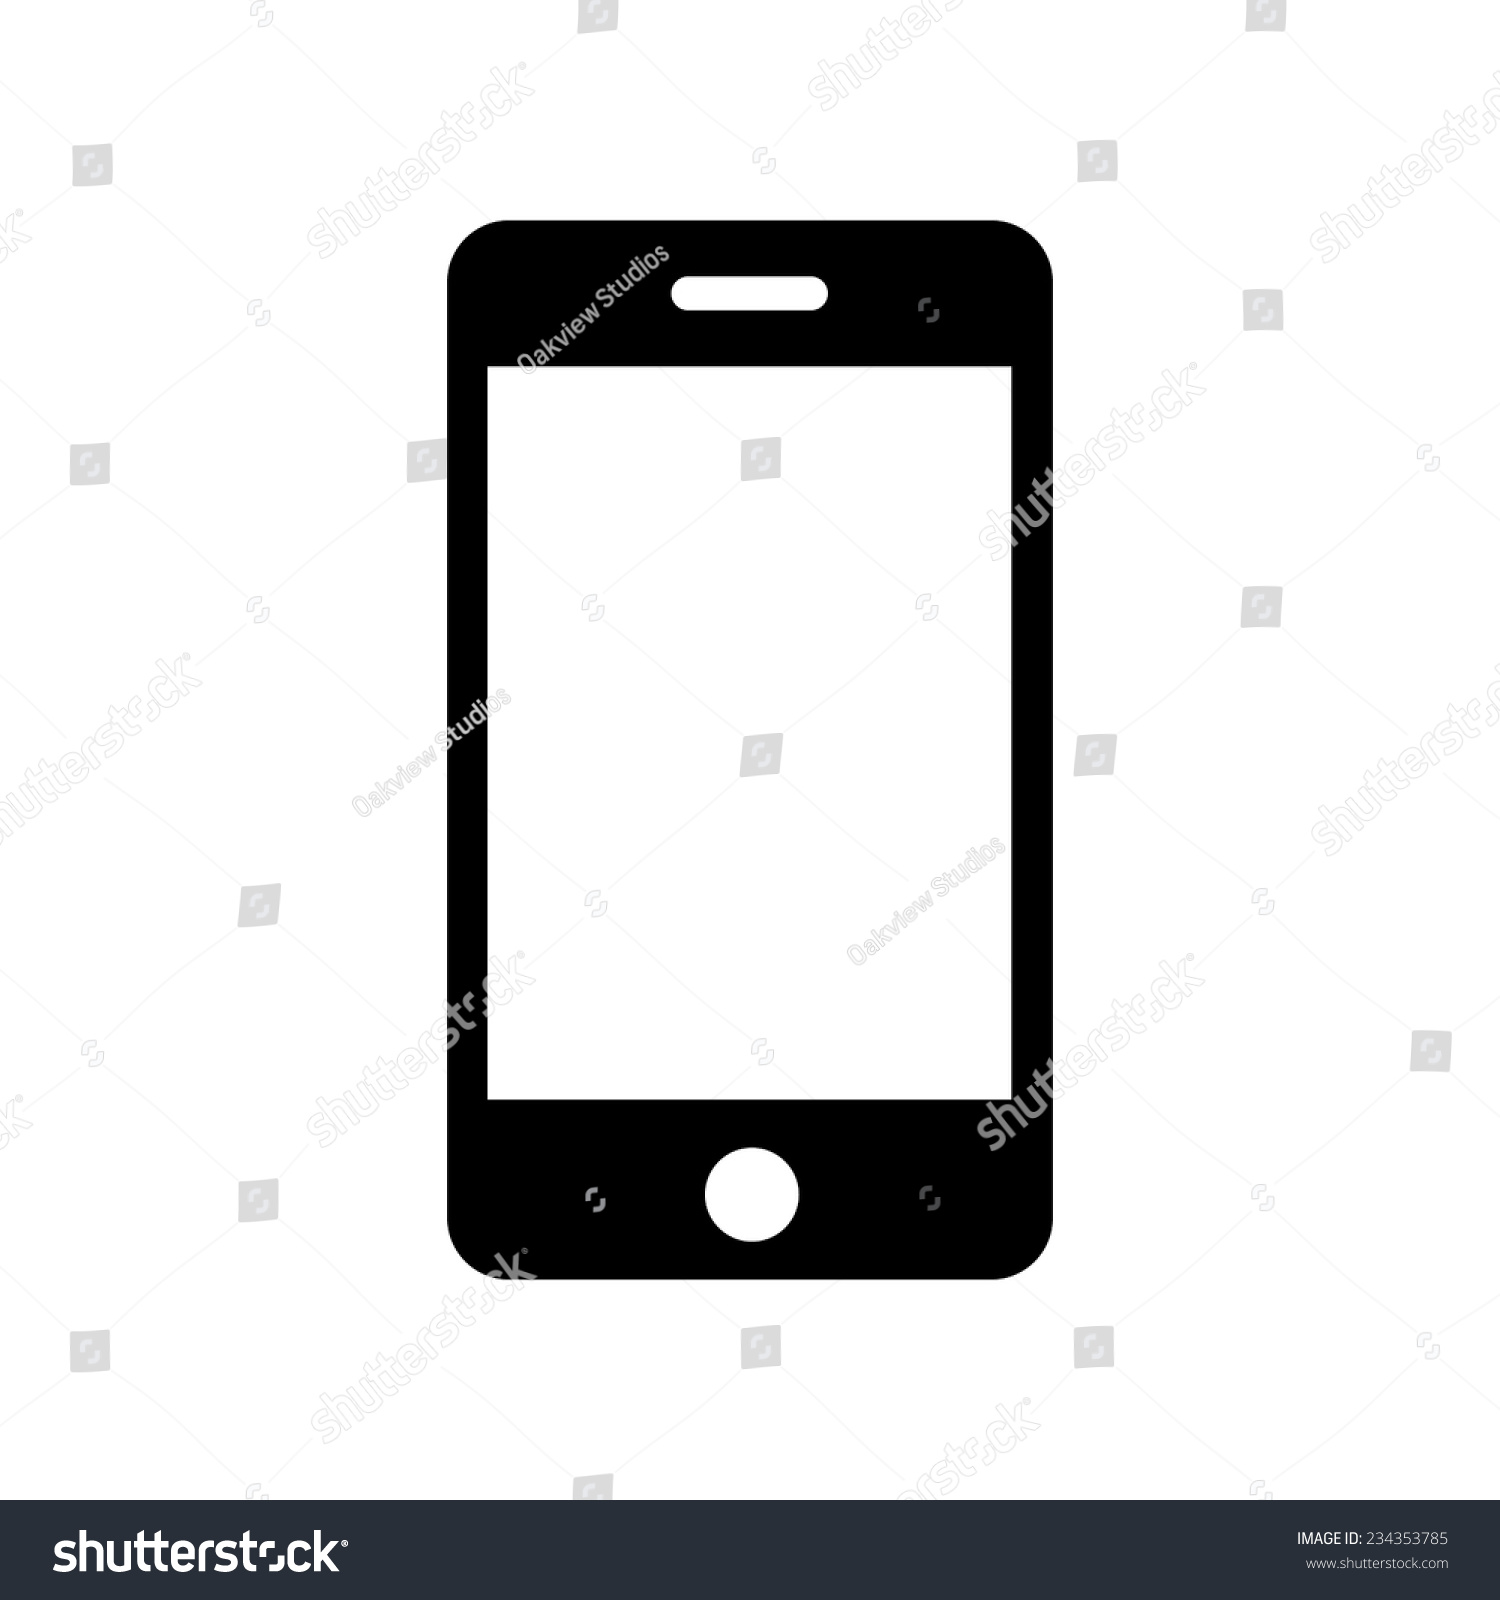 Iphone Icon, Vector Illustration - 234353785 : Shutterstock